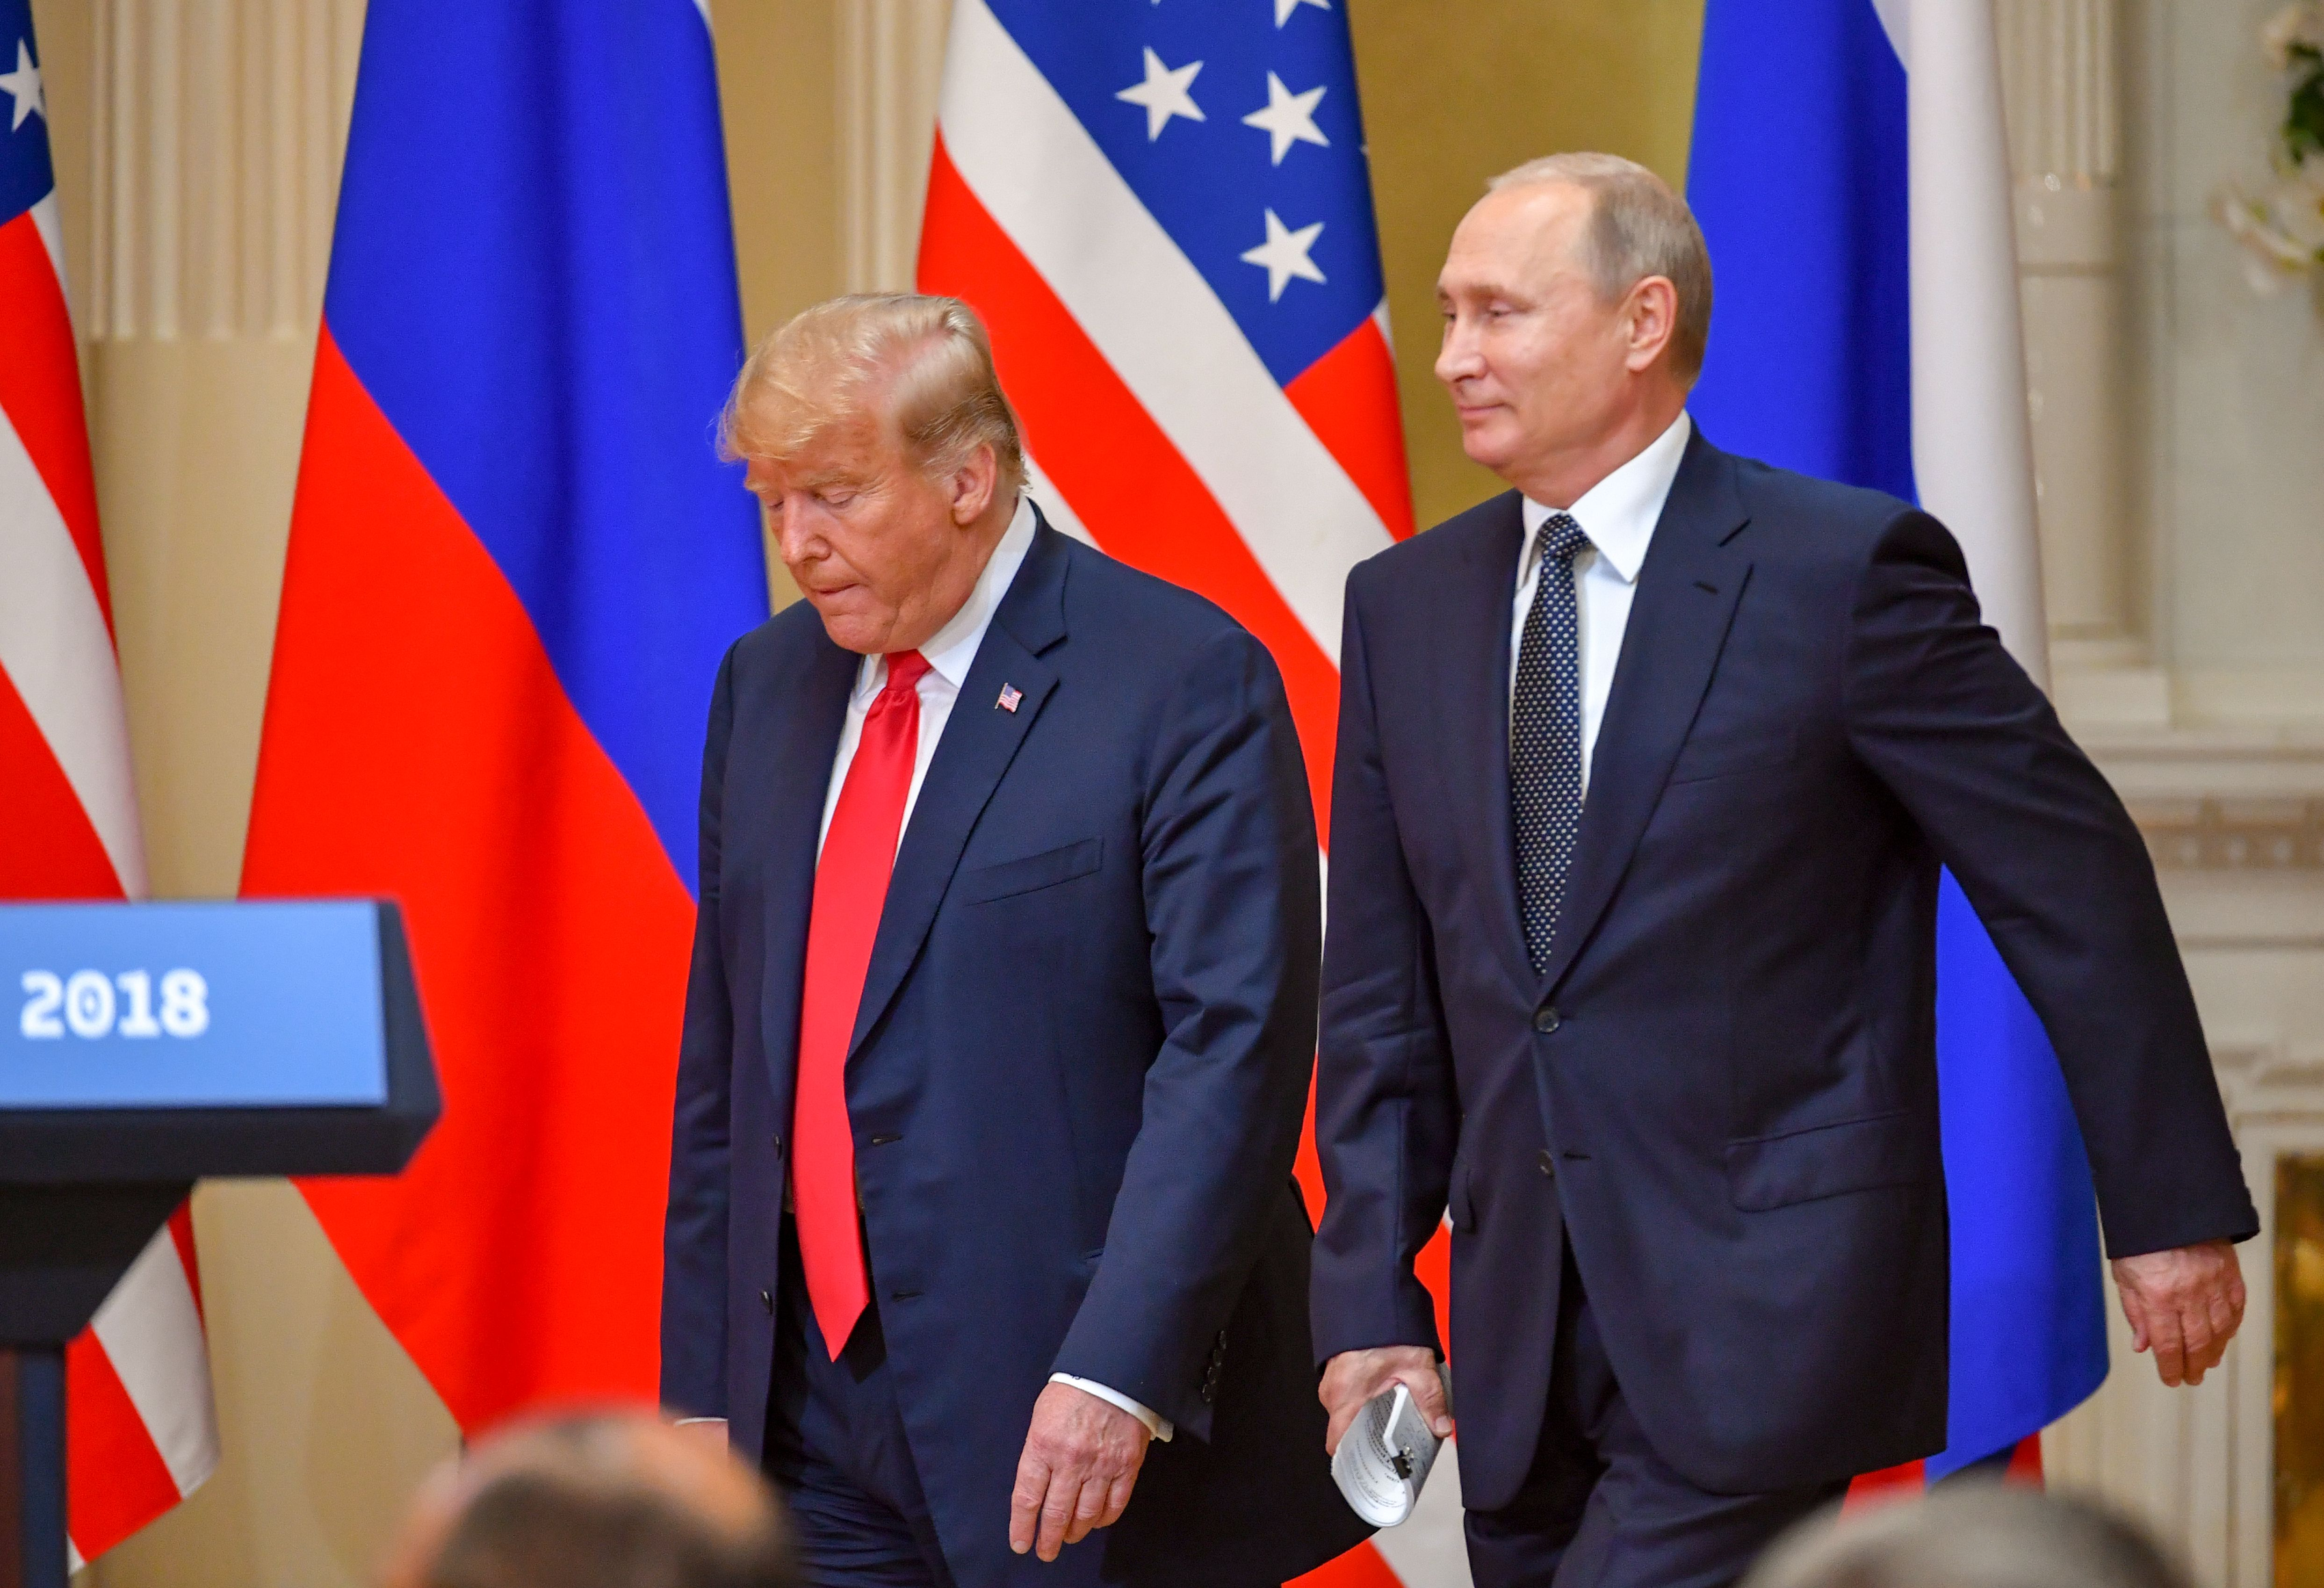 talkingpointsmemo.com - Josh Marshall - In Secret Calls, Putin Cultivated Trump's Anger at the 'Deep State'